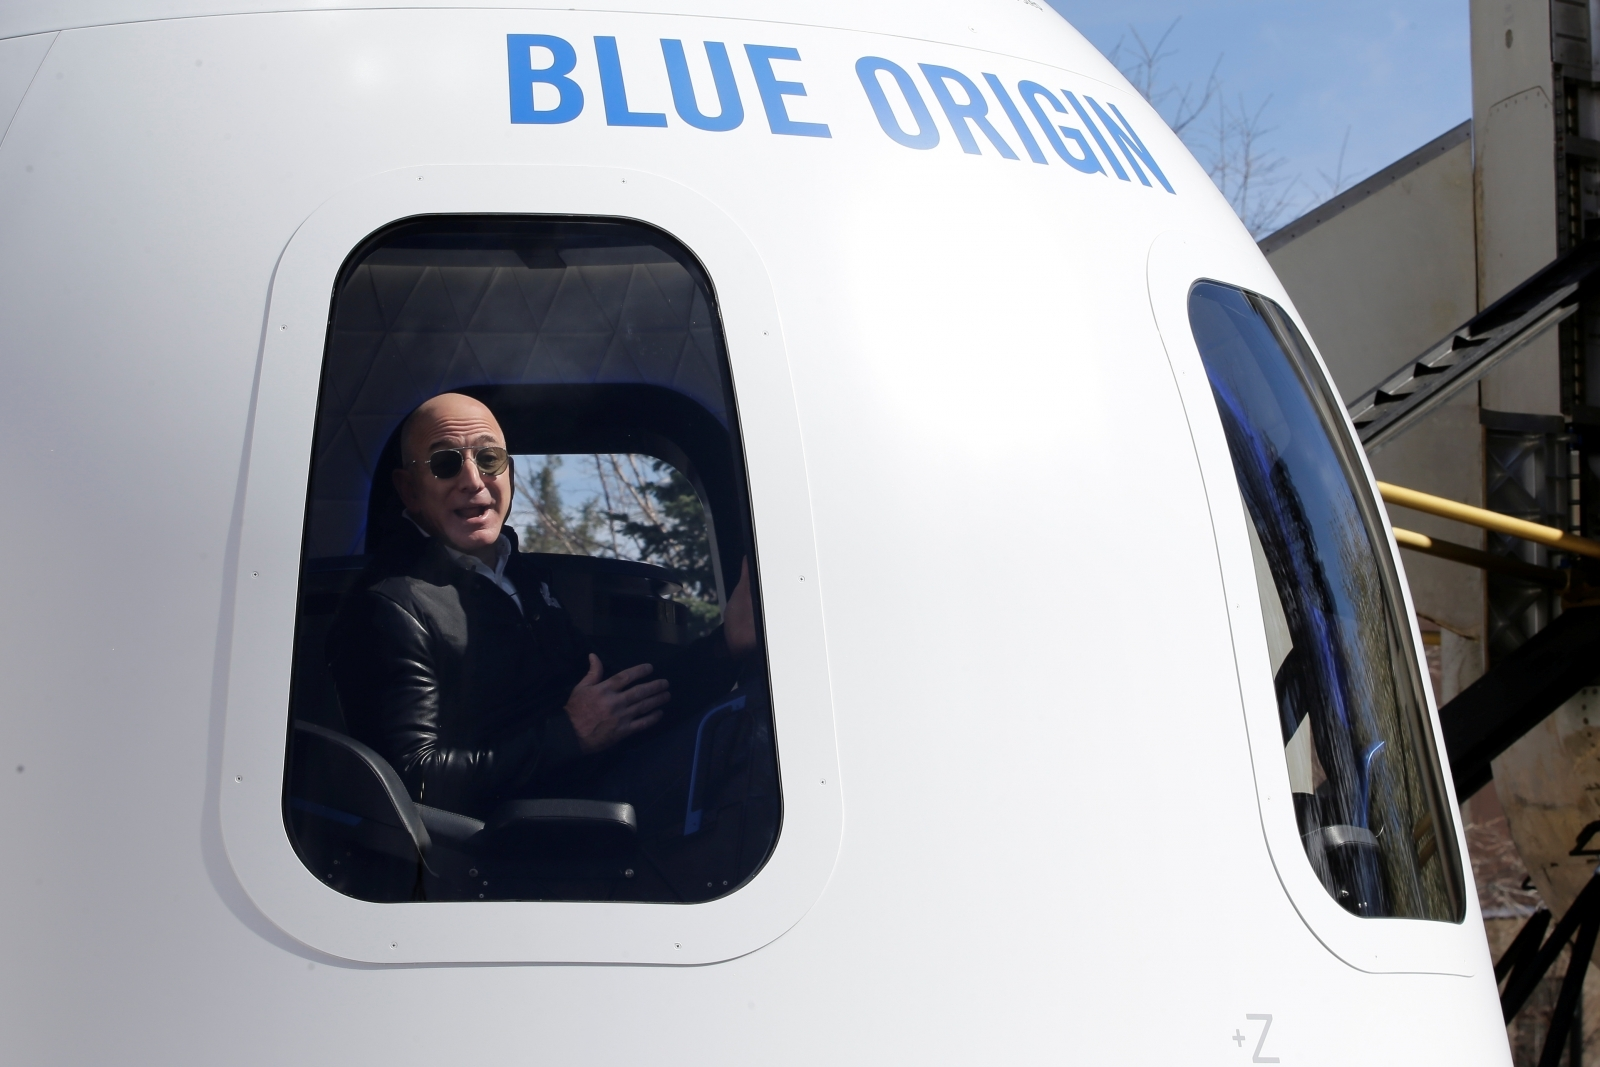 Blue Origin space tourism